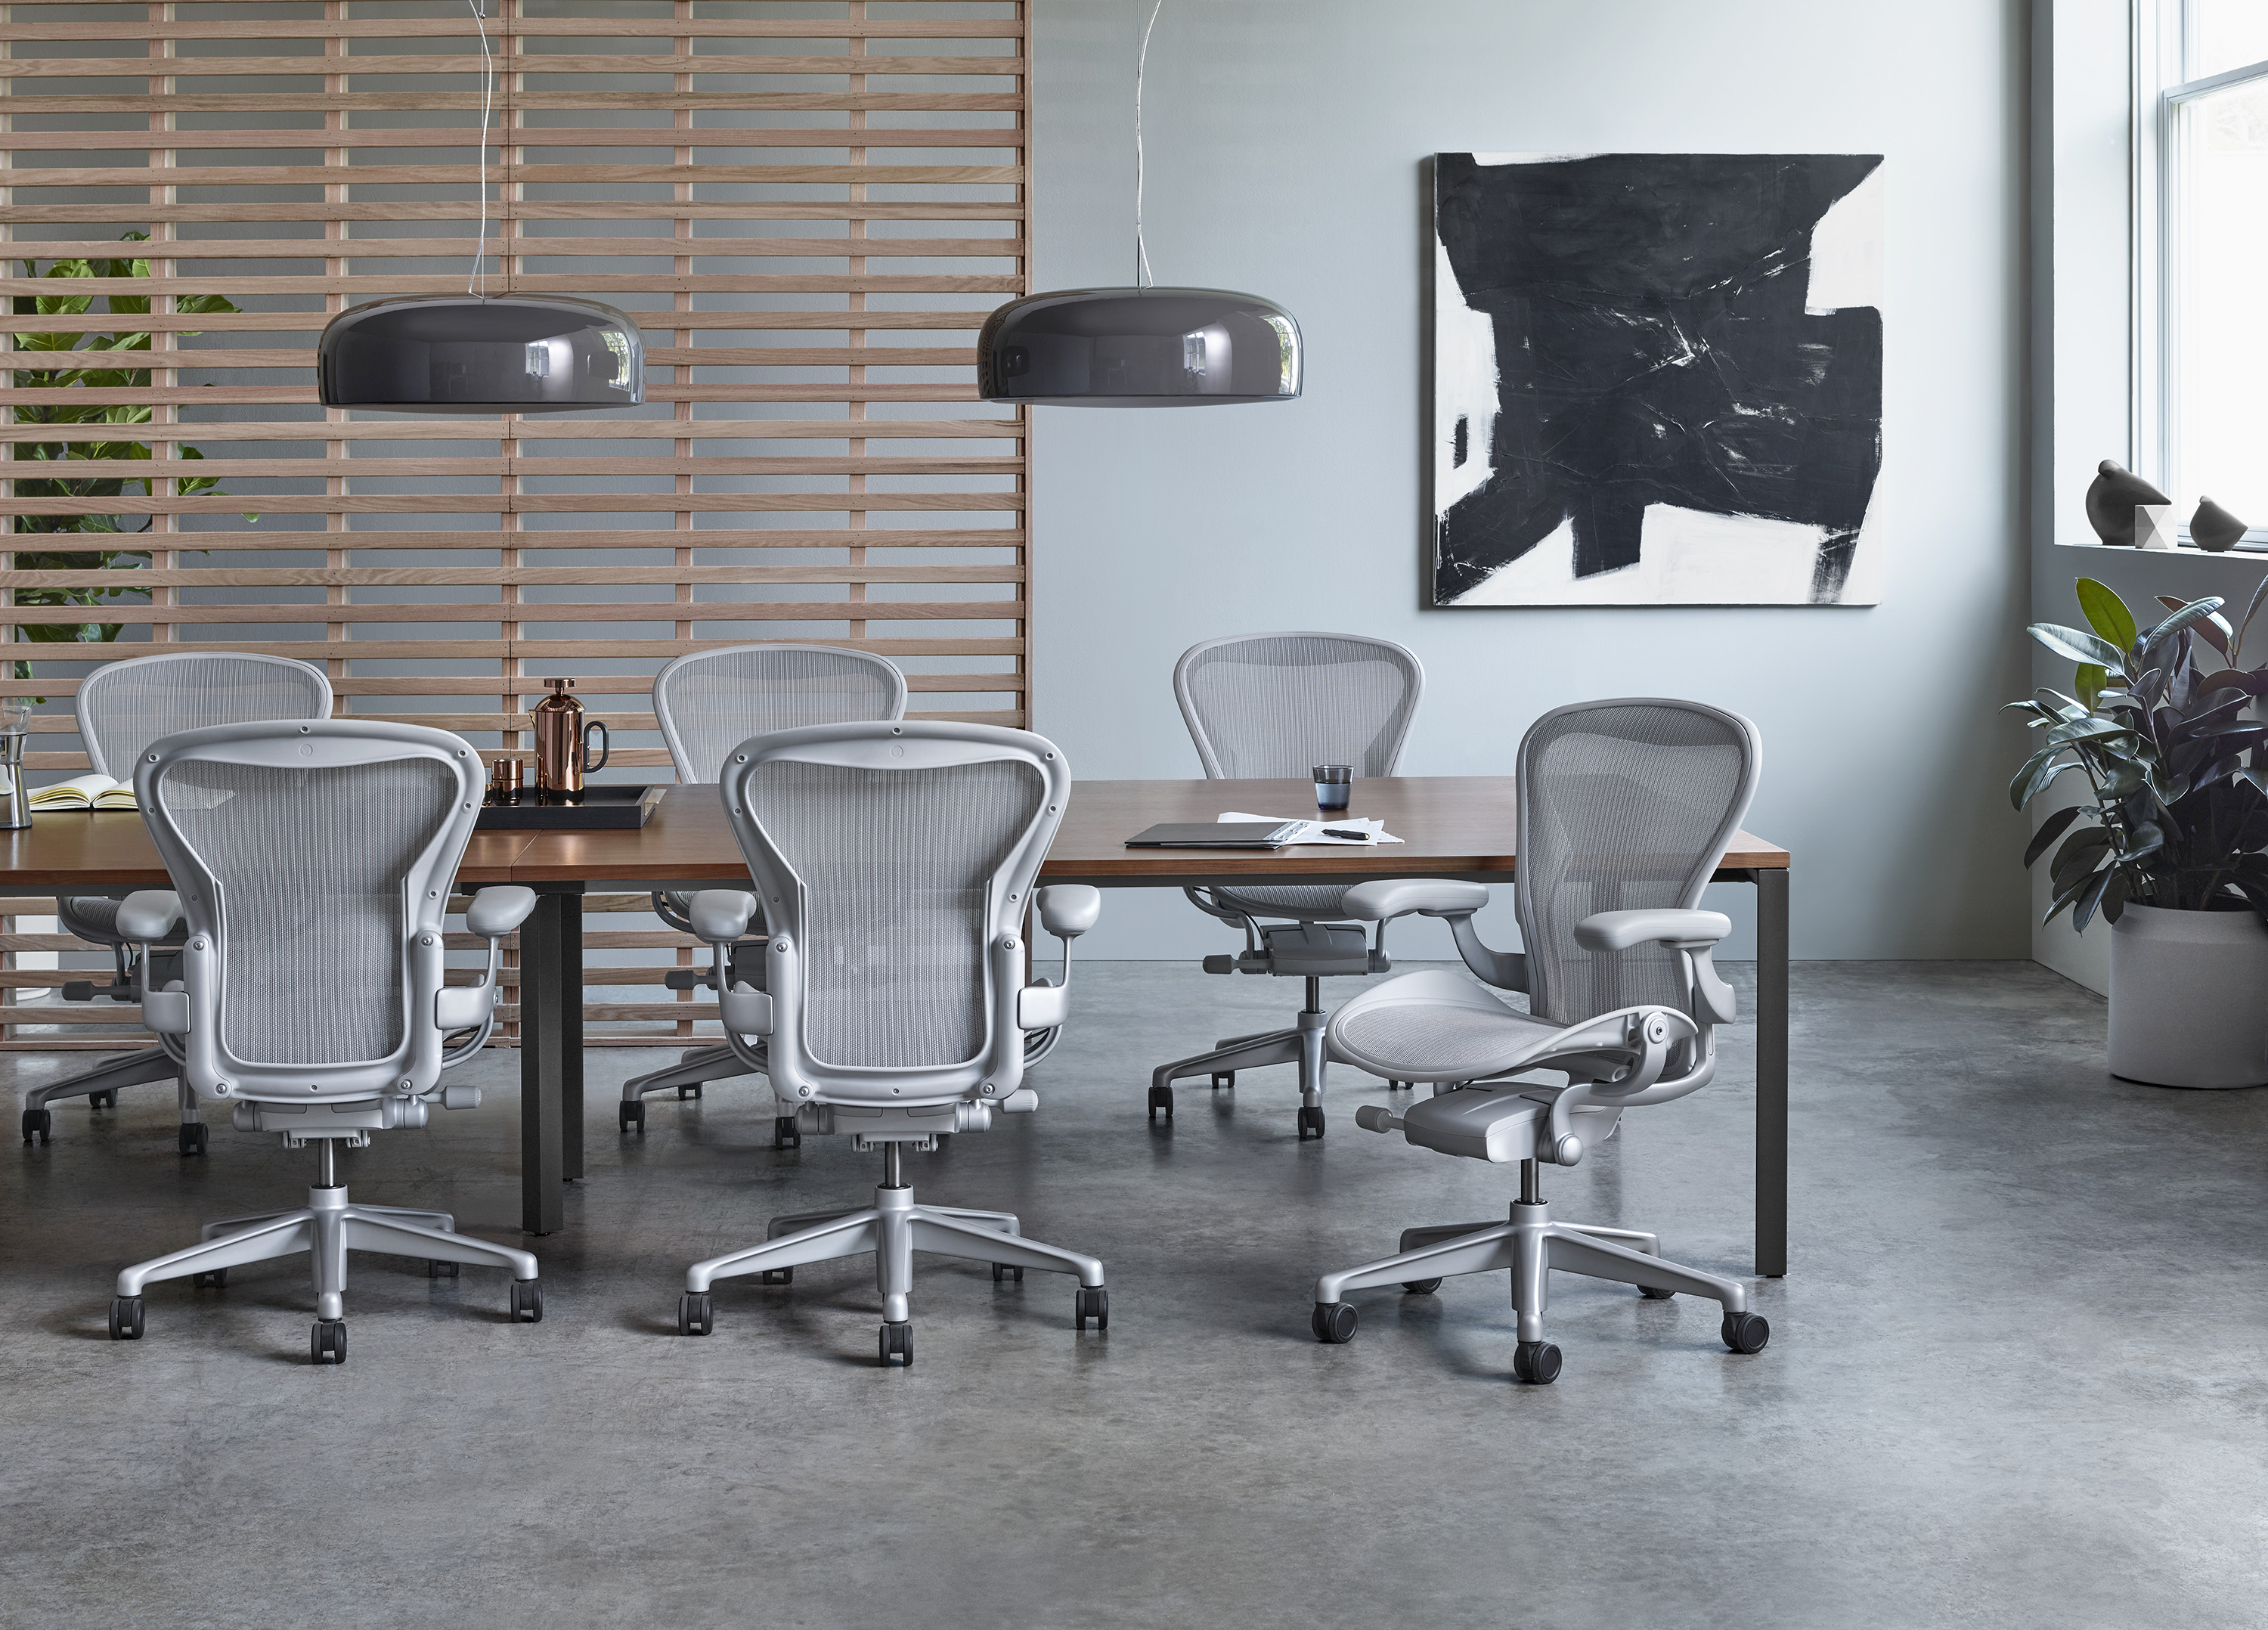 Ergonomic Design Gives You that Perfect Office Chair You've Been Seeking